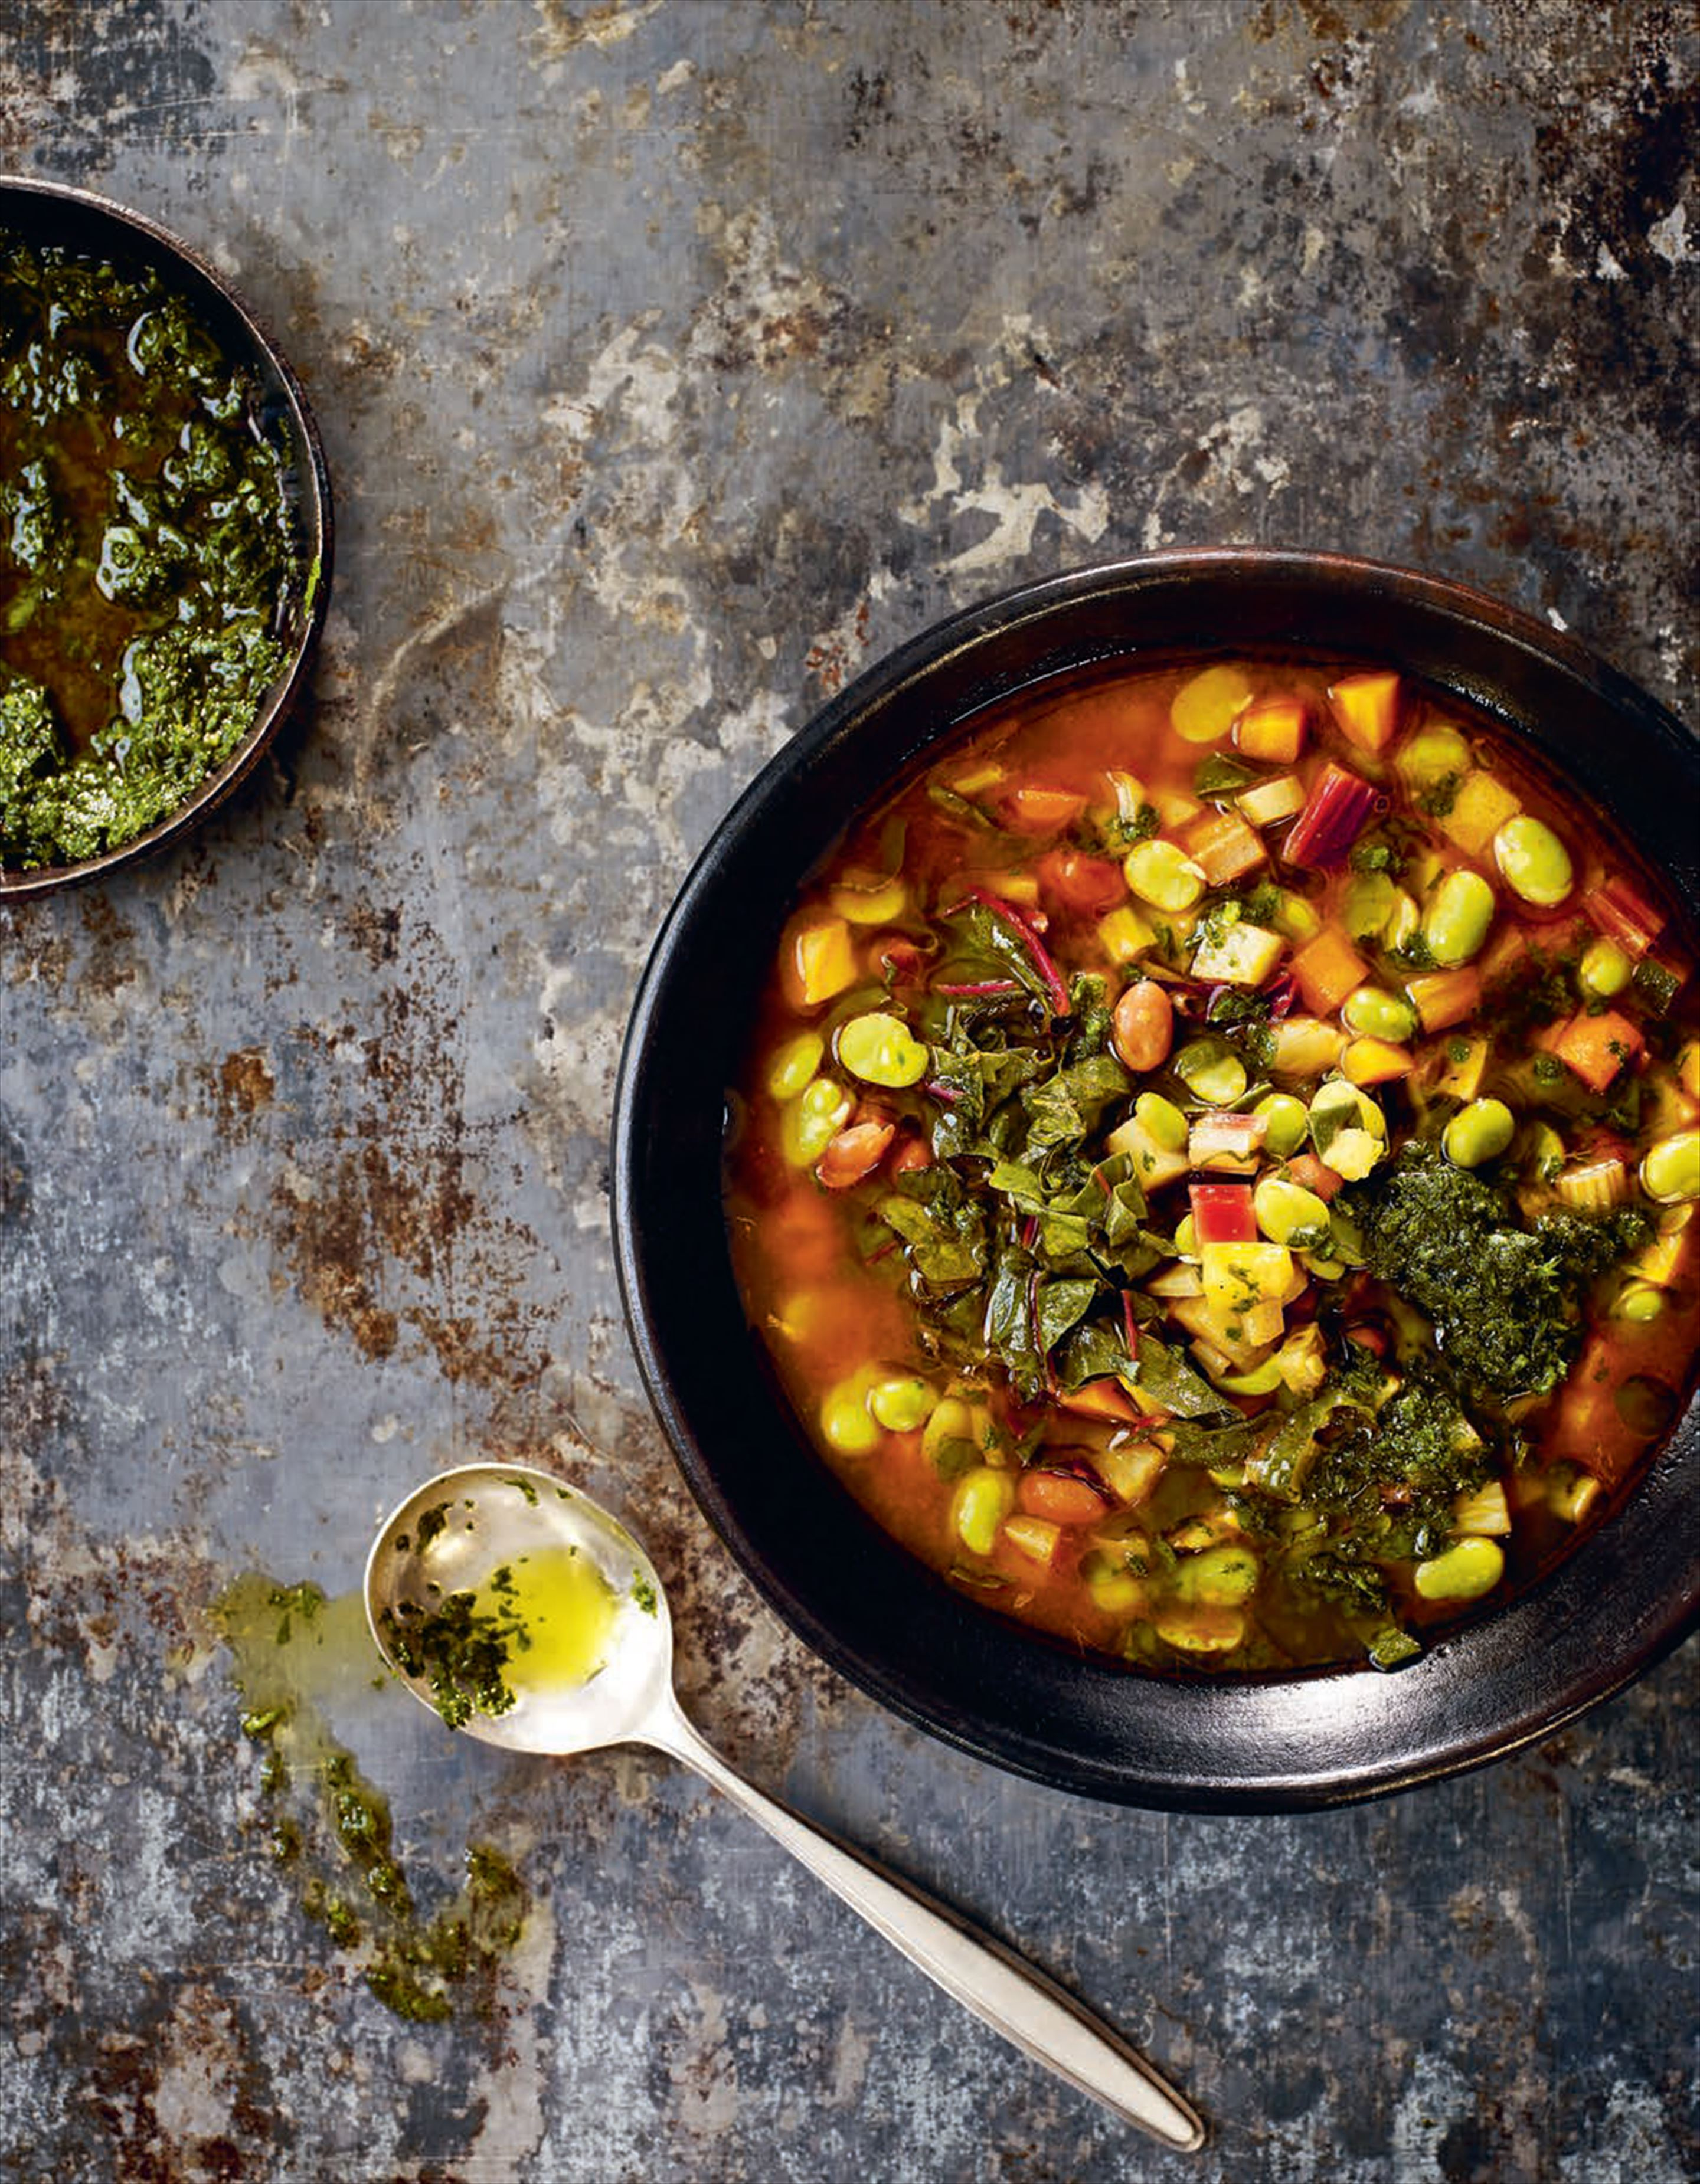 Rich tomato broth with chard, borlotti beans and parsley pistou